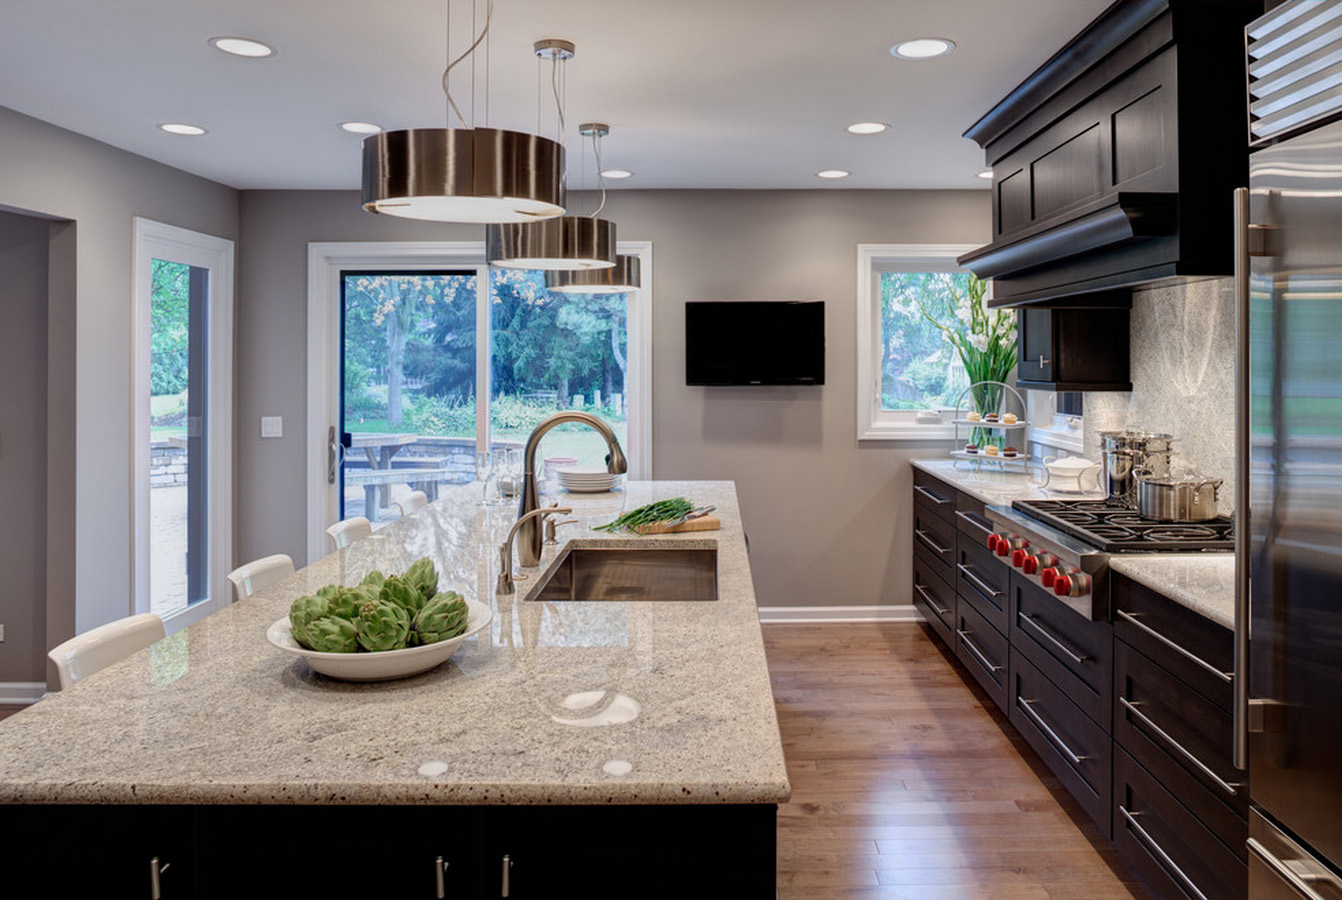 Top 15 Stunning Kitchen Design Ideas, Plus Their Costs